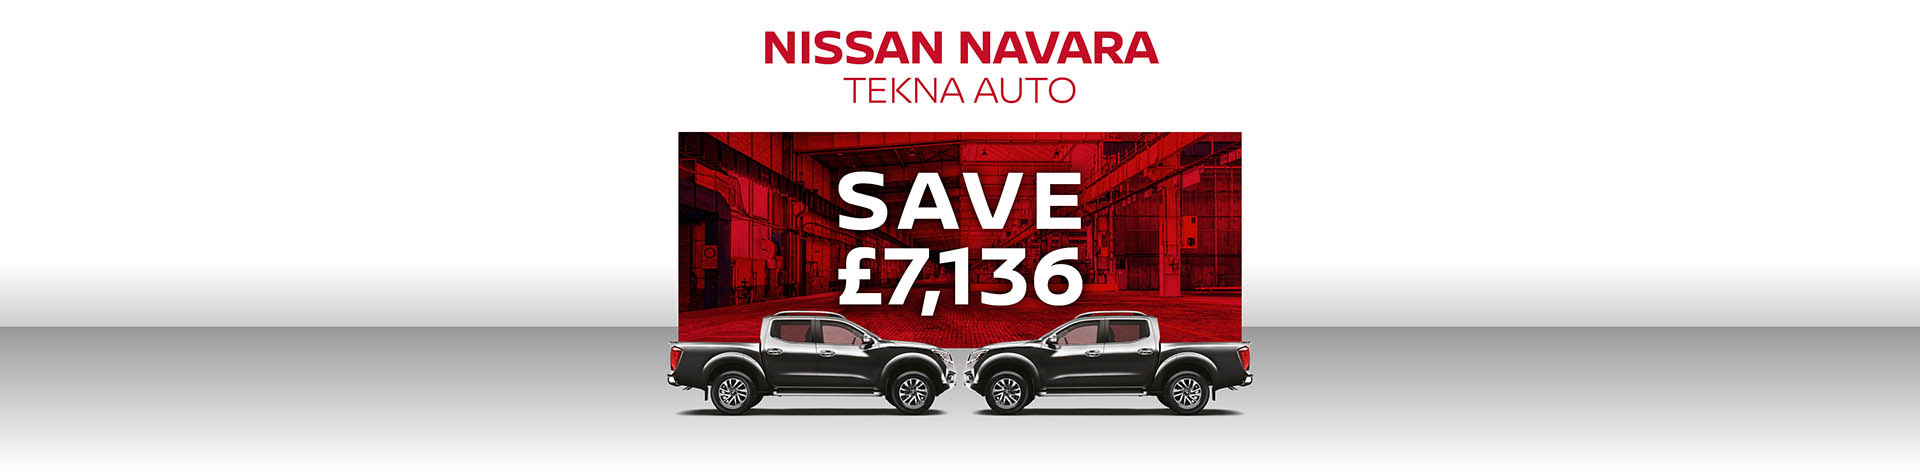 Nissan Navara Tekna Auto Offer